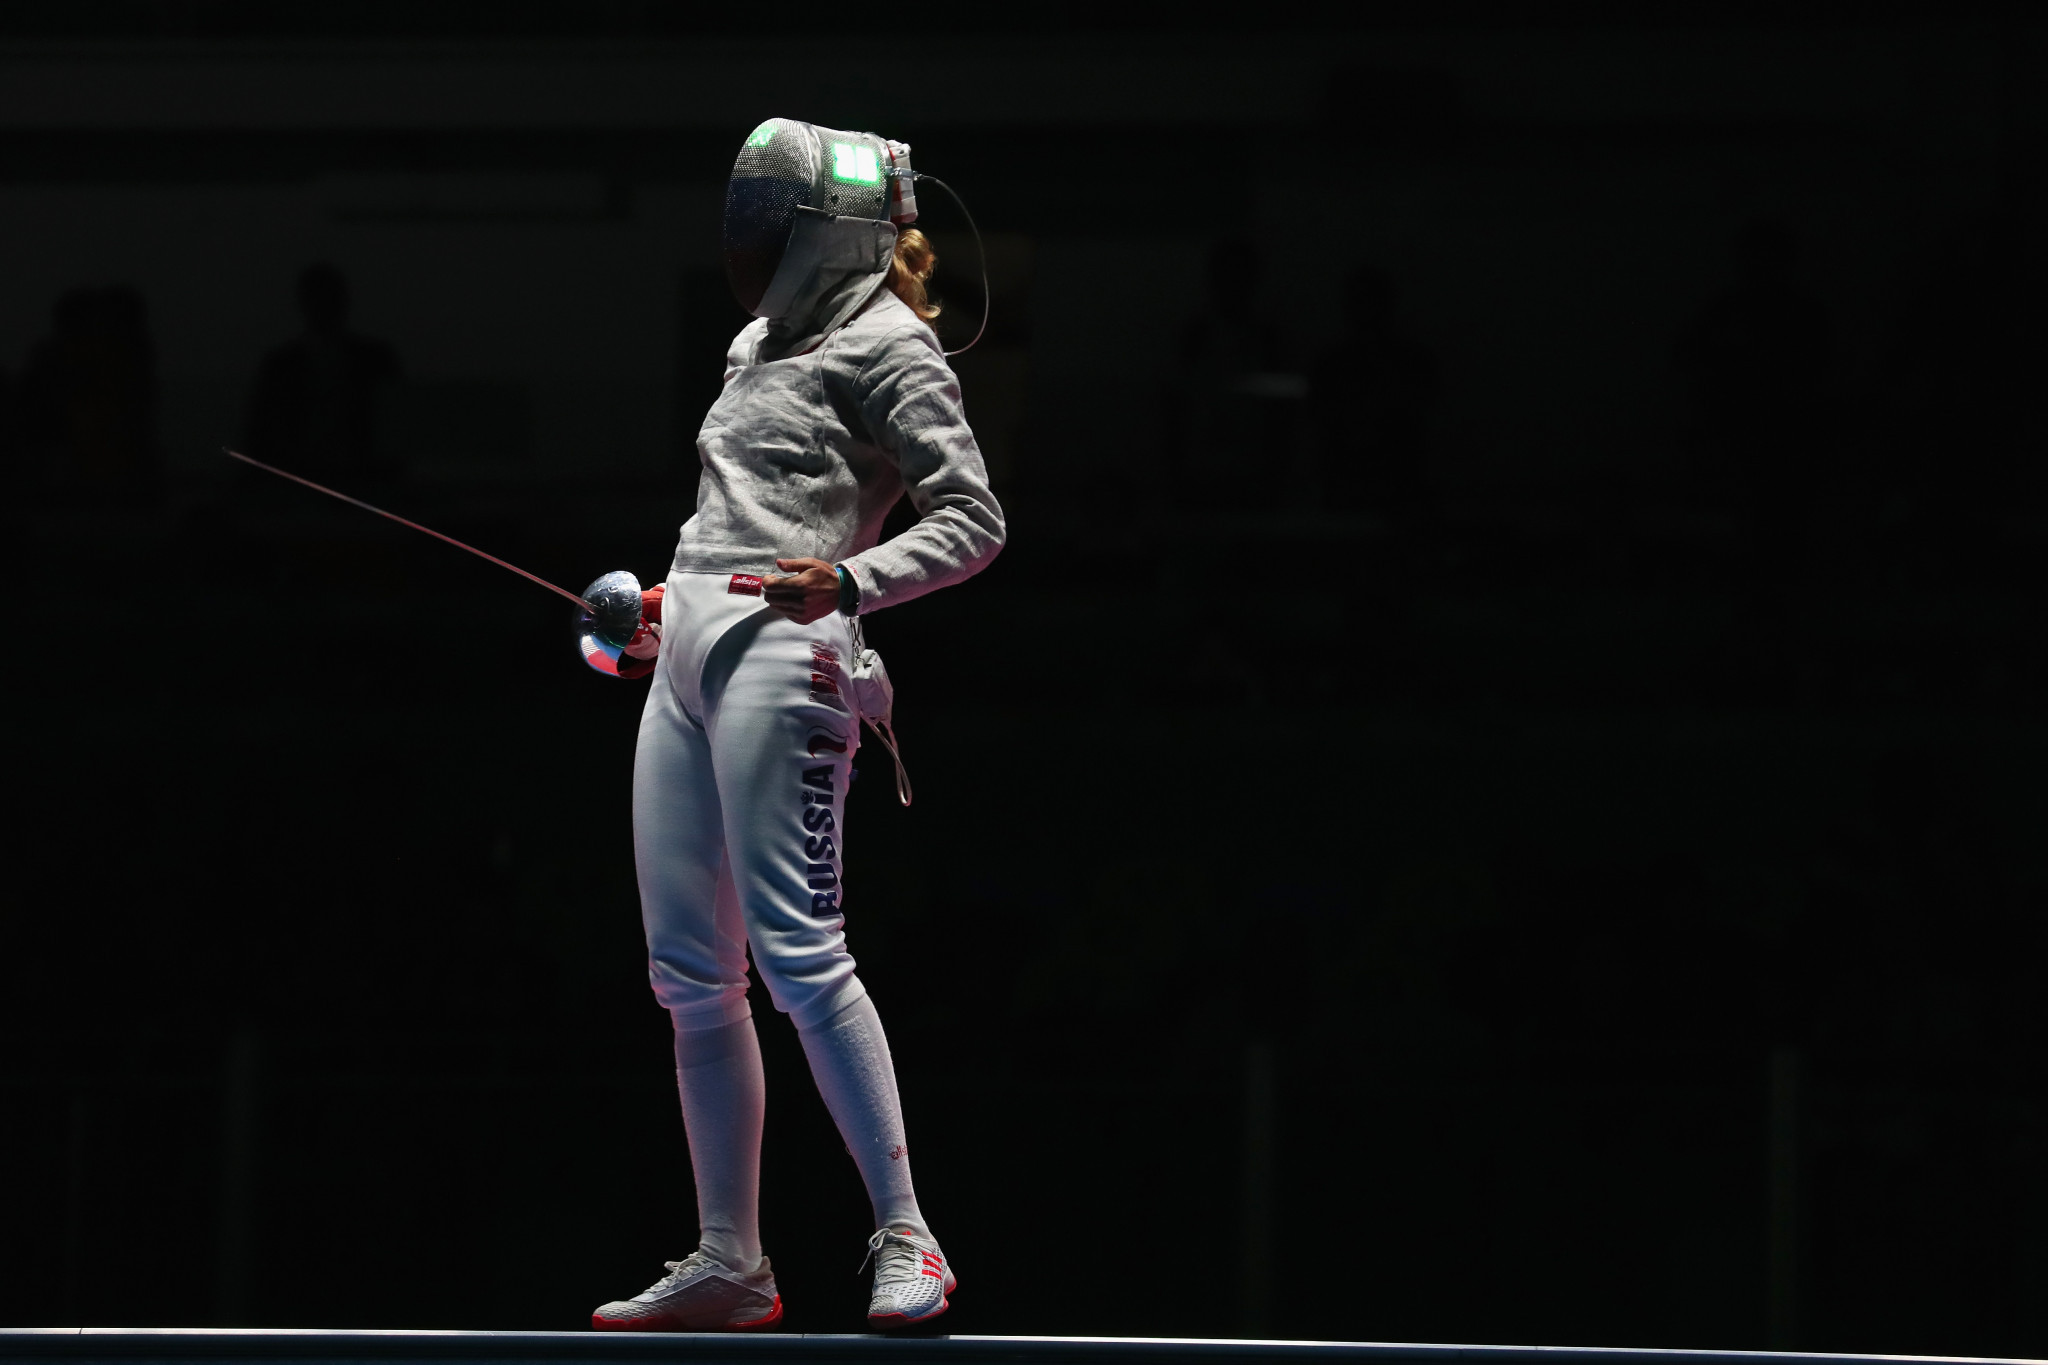 Olympic champion Yana Egorian won the women's individual sabre title at the World Military Games ©Getty Images